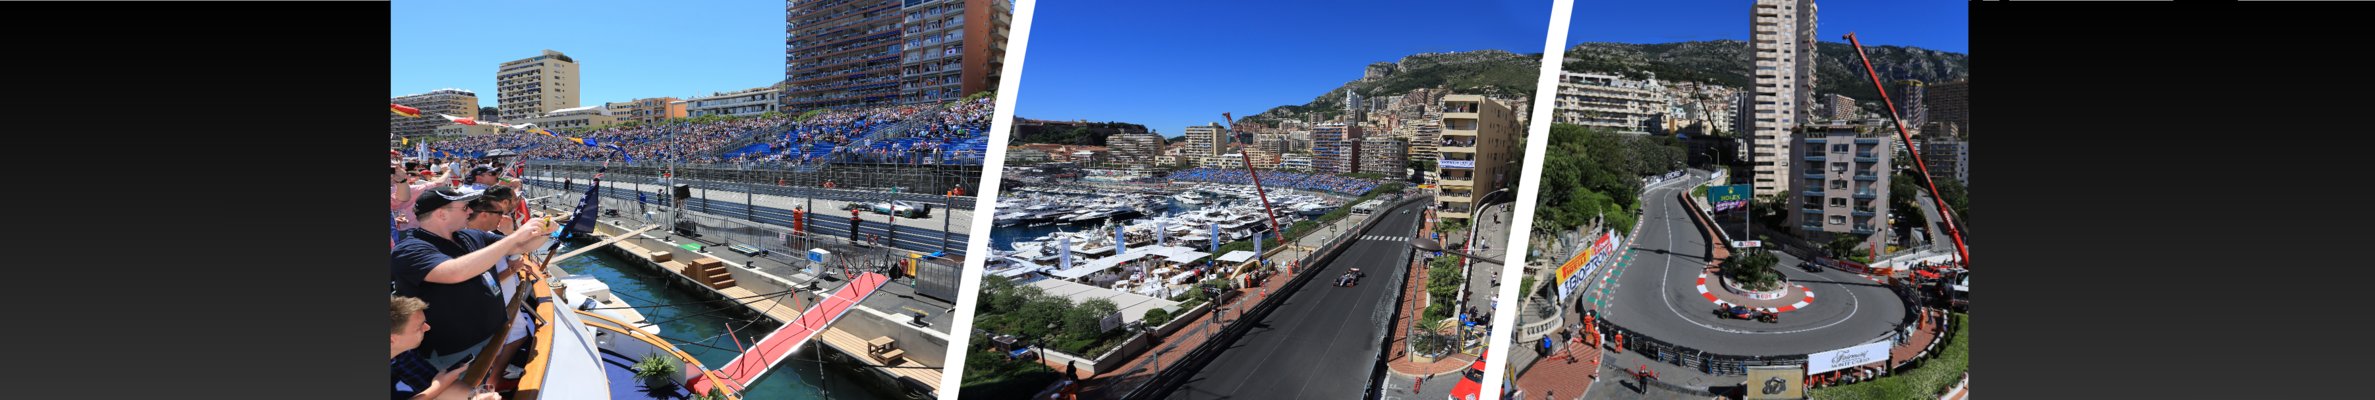 Fairmont Black Package - Monaco GP